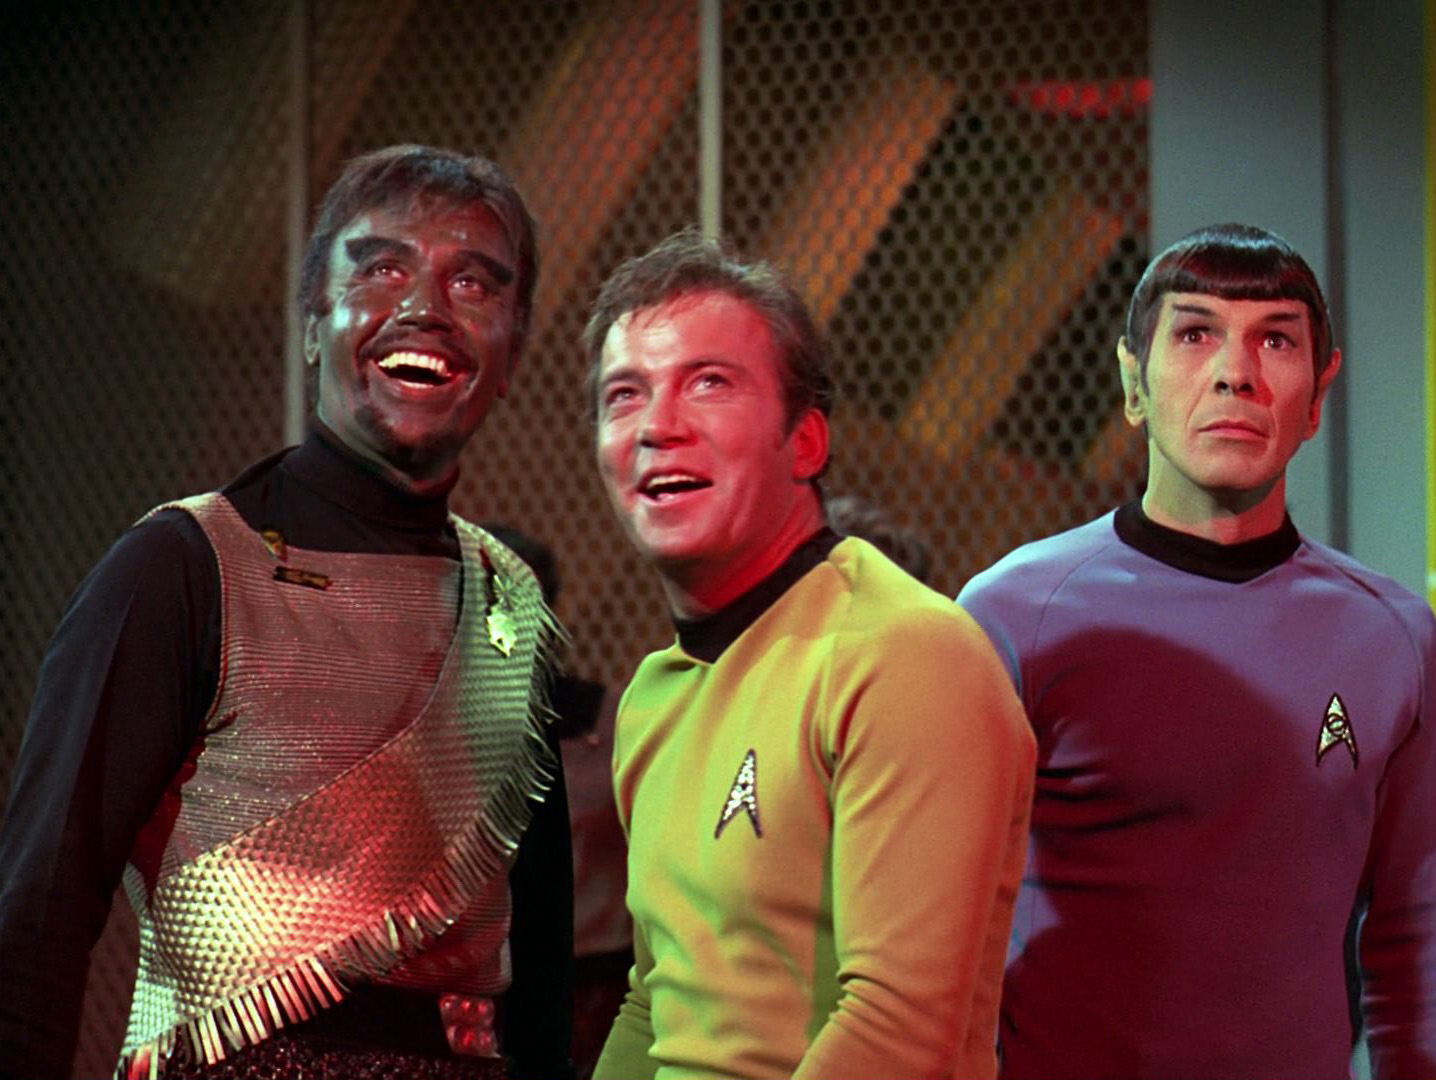 Kang, Kirk and Spock at the end of the episode